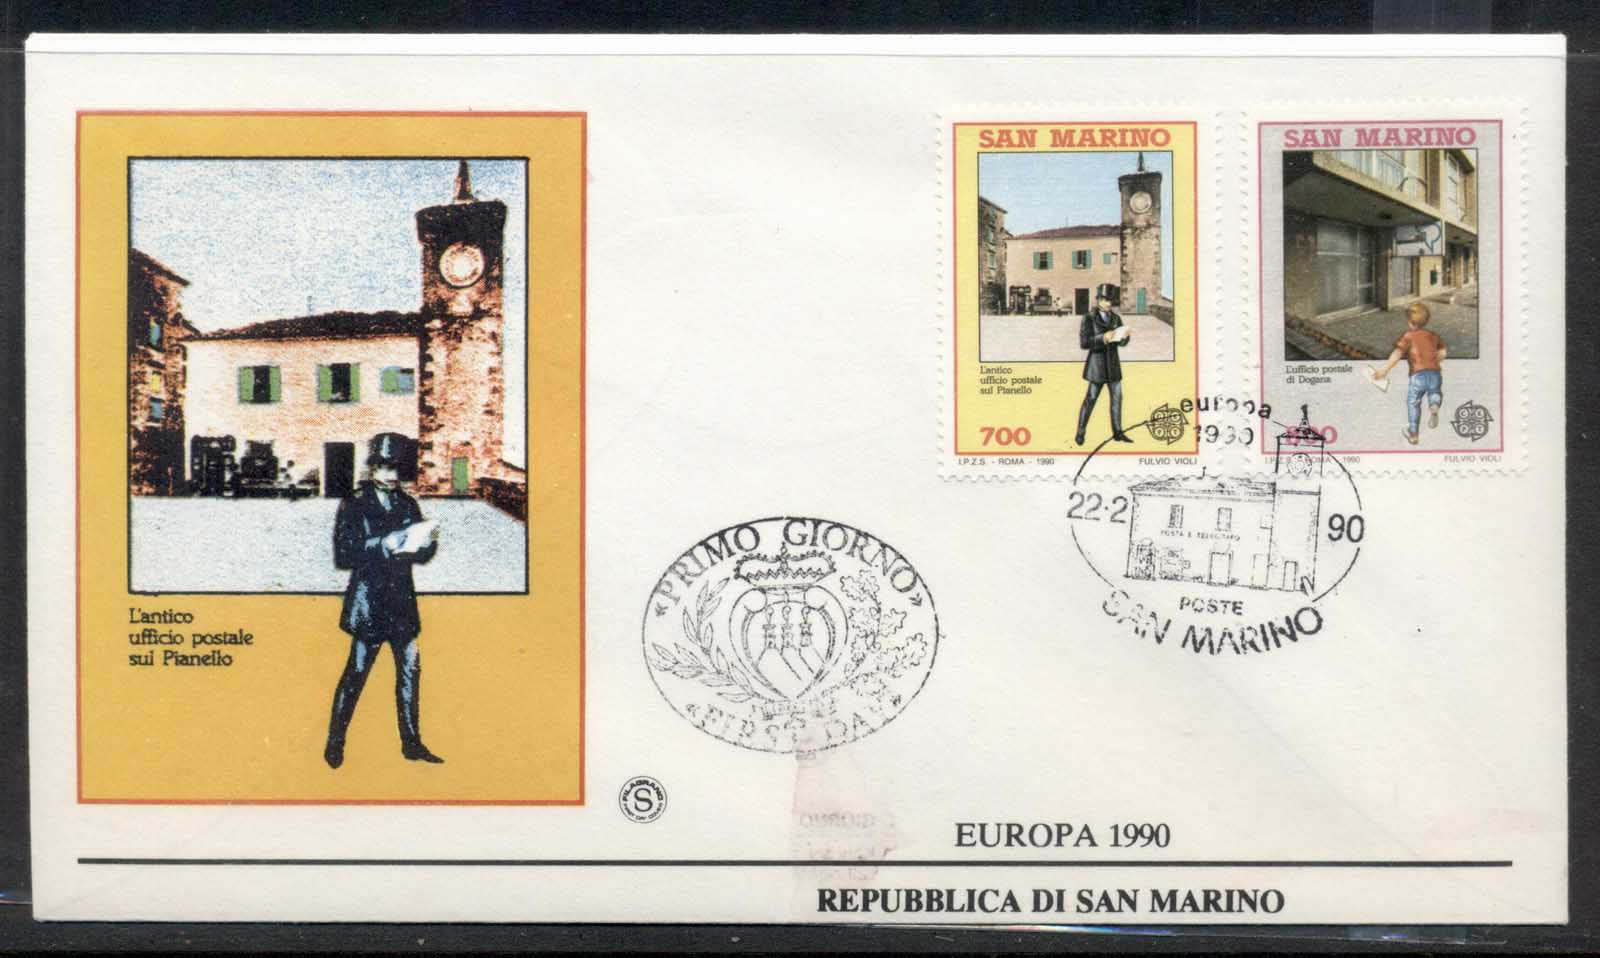 San Marino 1990 Europa Post Offices FDC